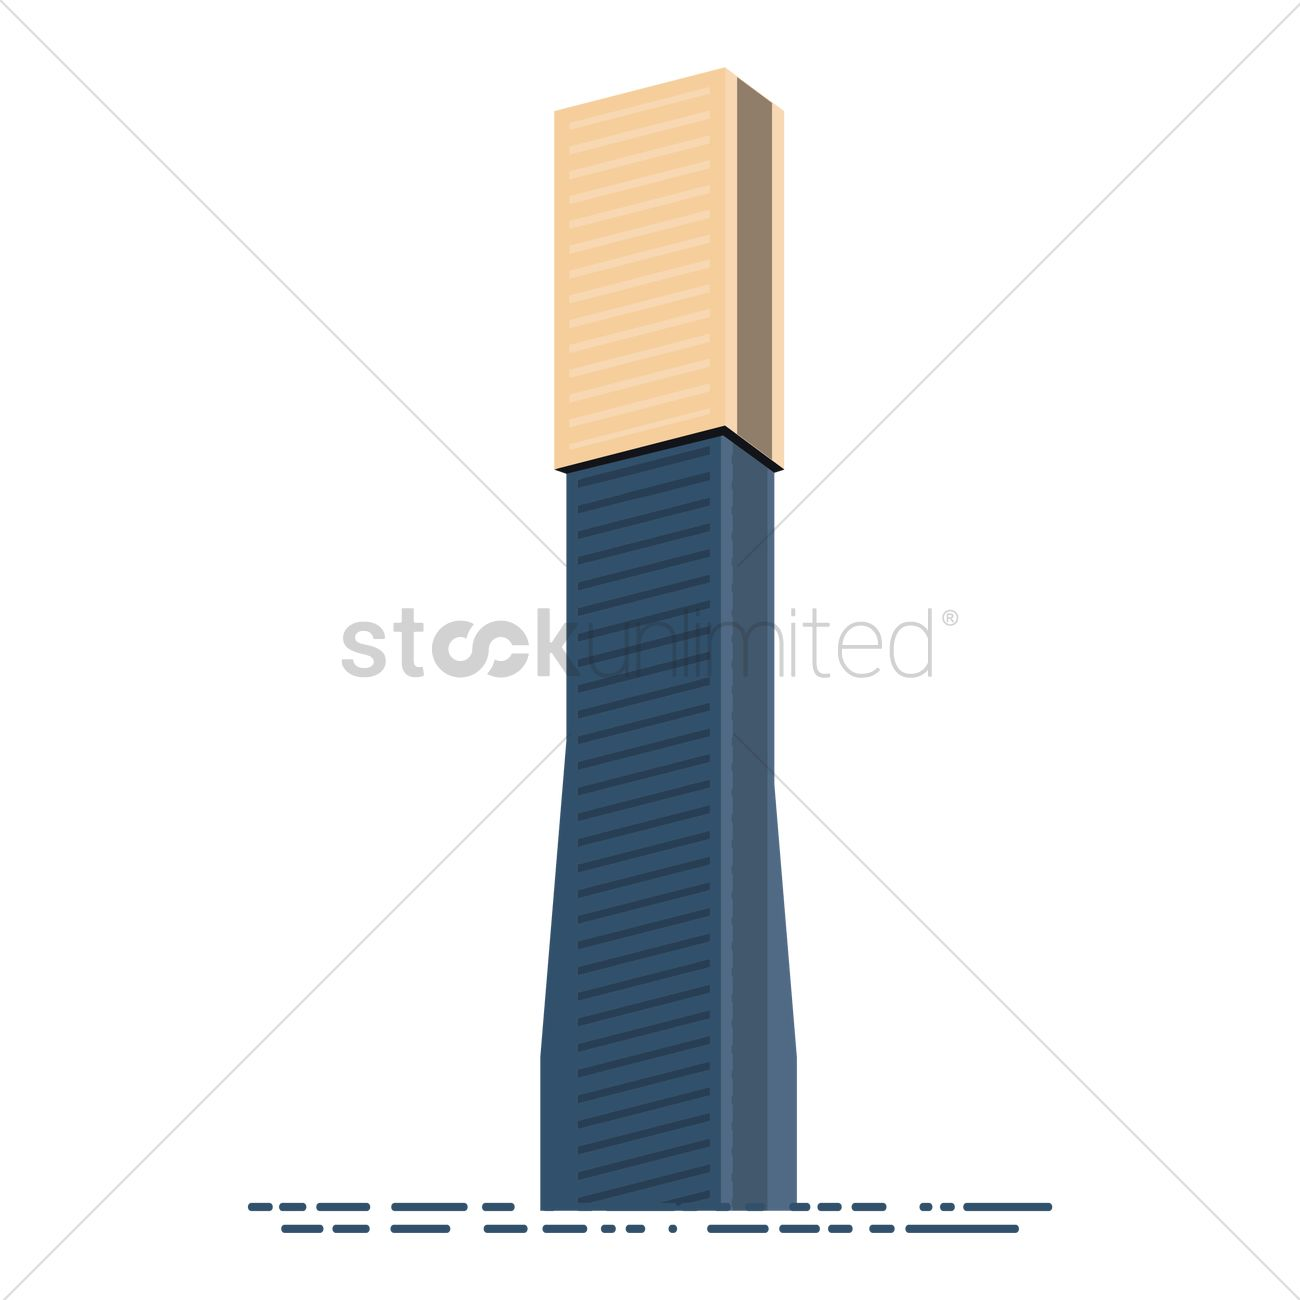 Eureka tower Vector Image.